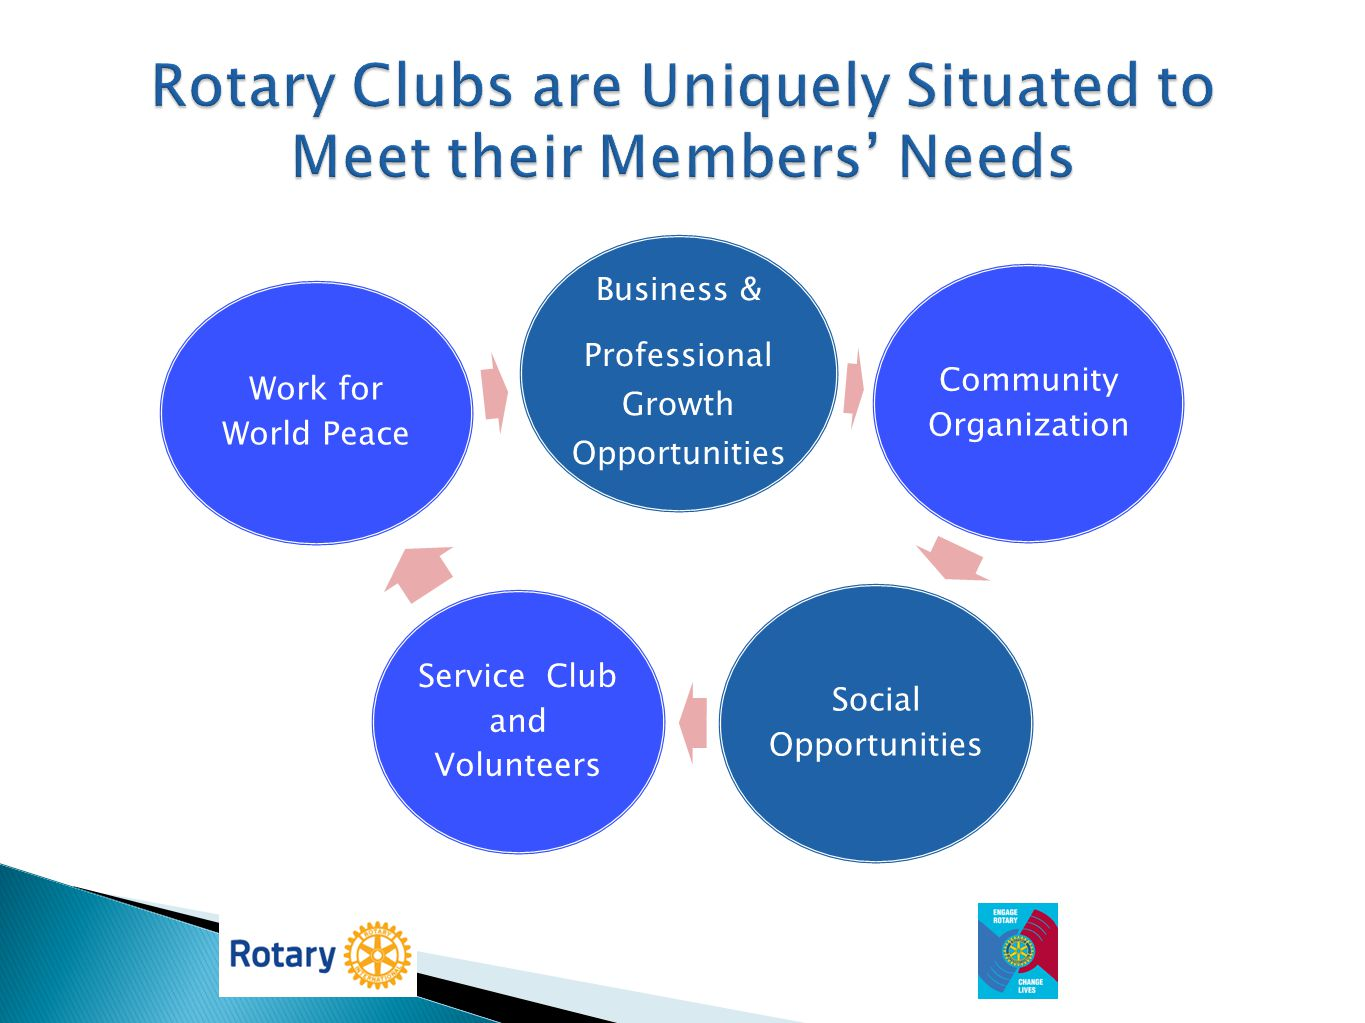 Rotary Clubs are Uniquely Situated to Meet their Members' Needs